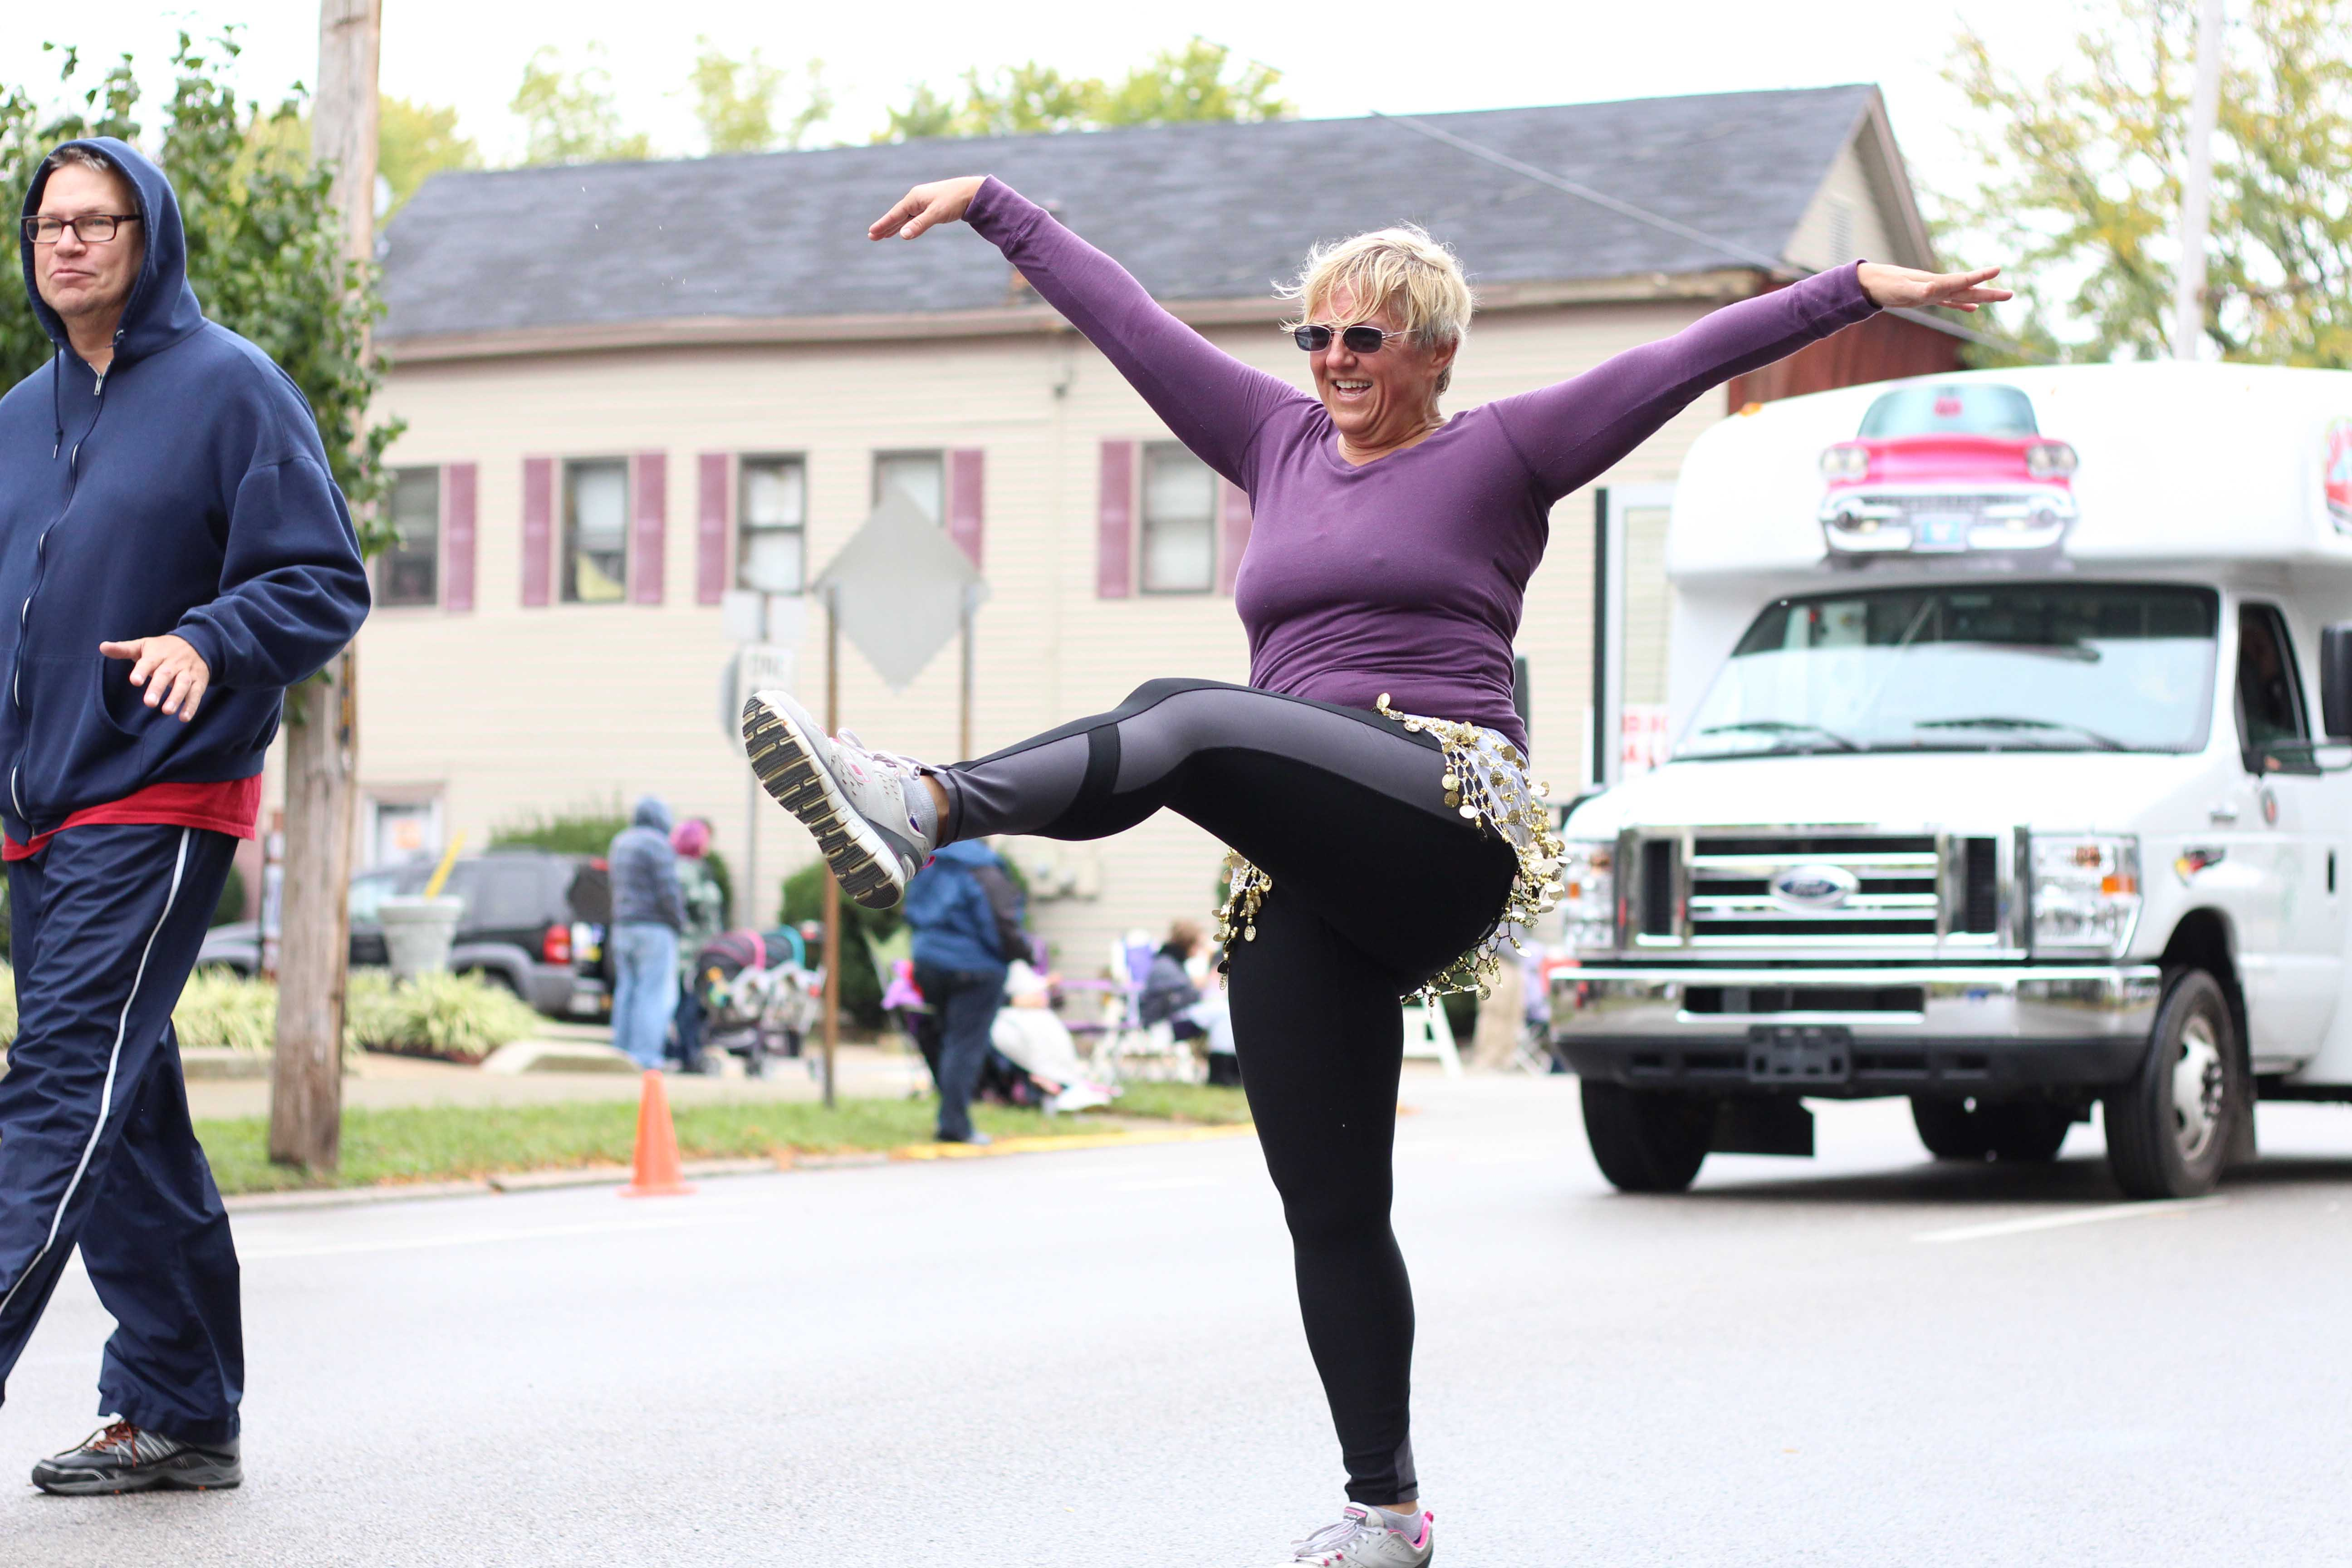 Judy+Kingston+danced+the+entire+time+to+the+music+that+the+Center+for+Women+and+Families+float+played+during+the+parade..+Her+favorite+move+was+the+old+school+kick+line.%0A